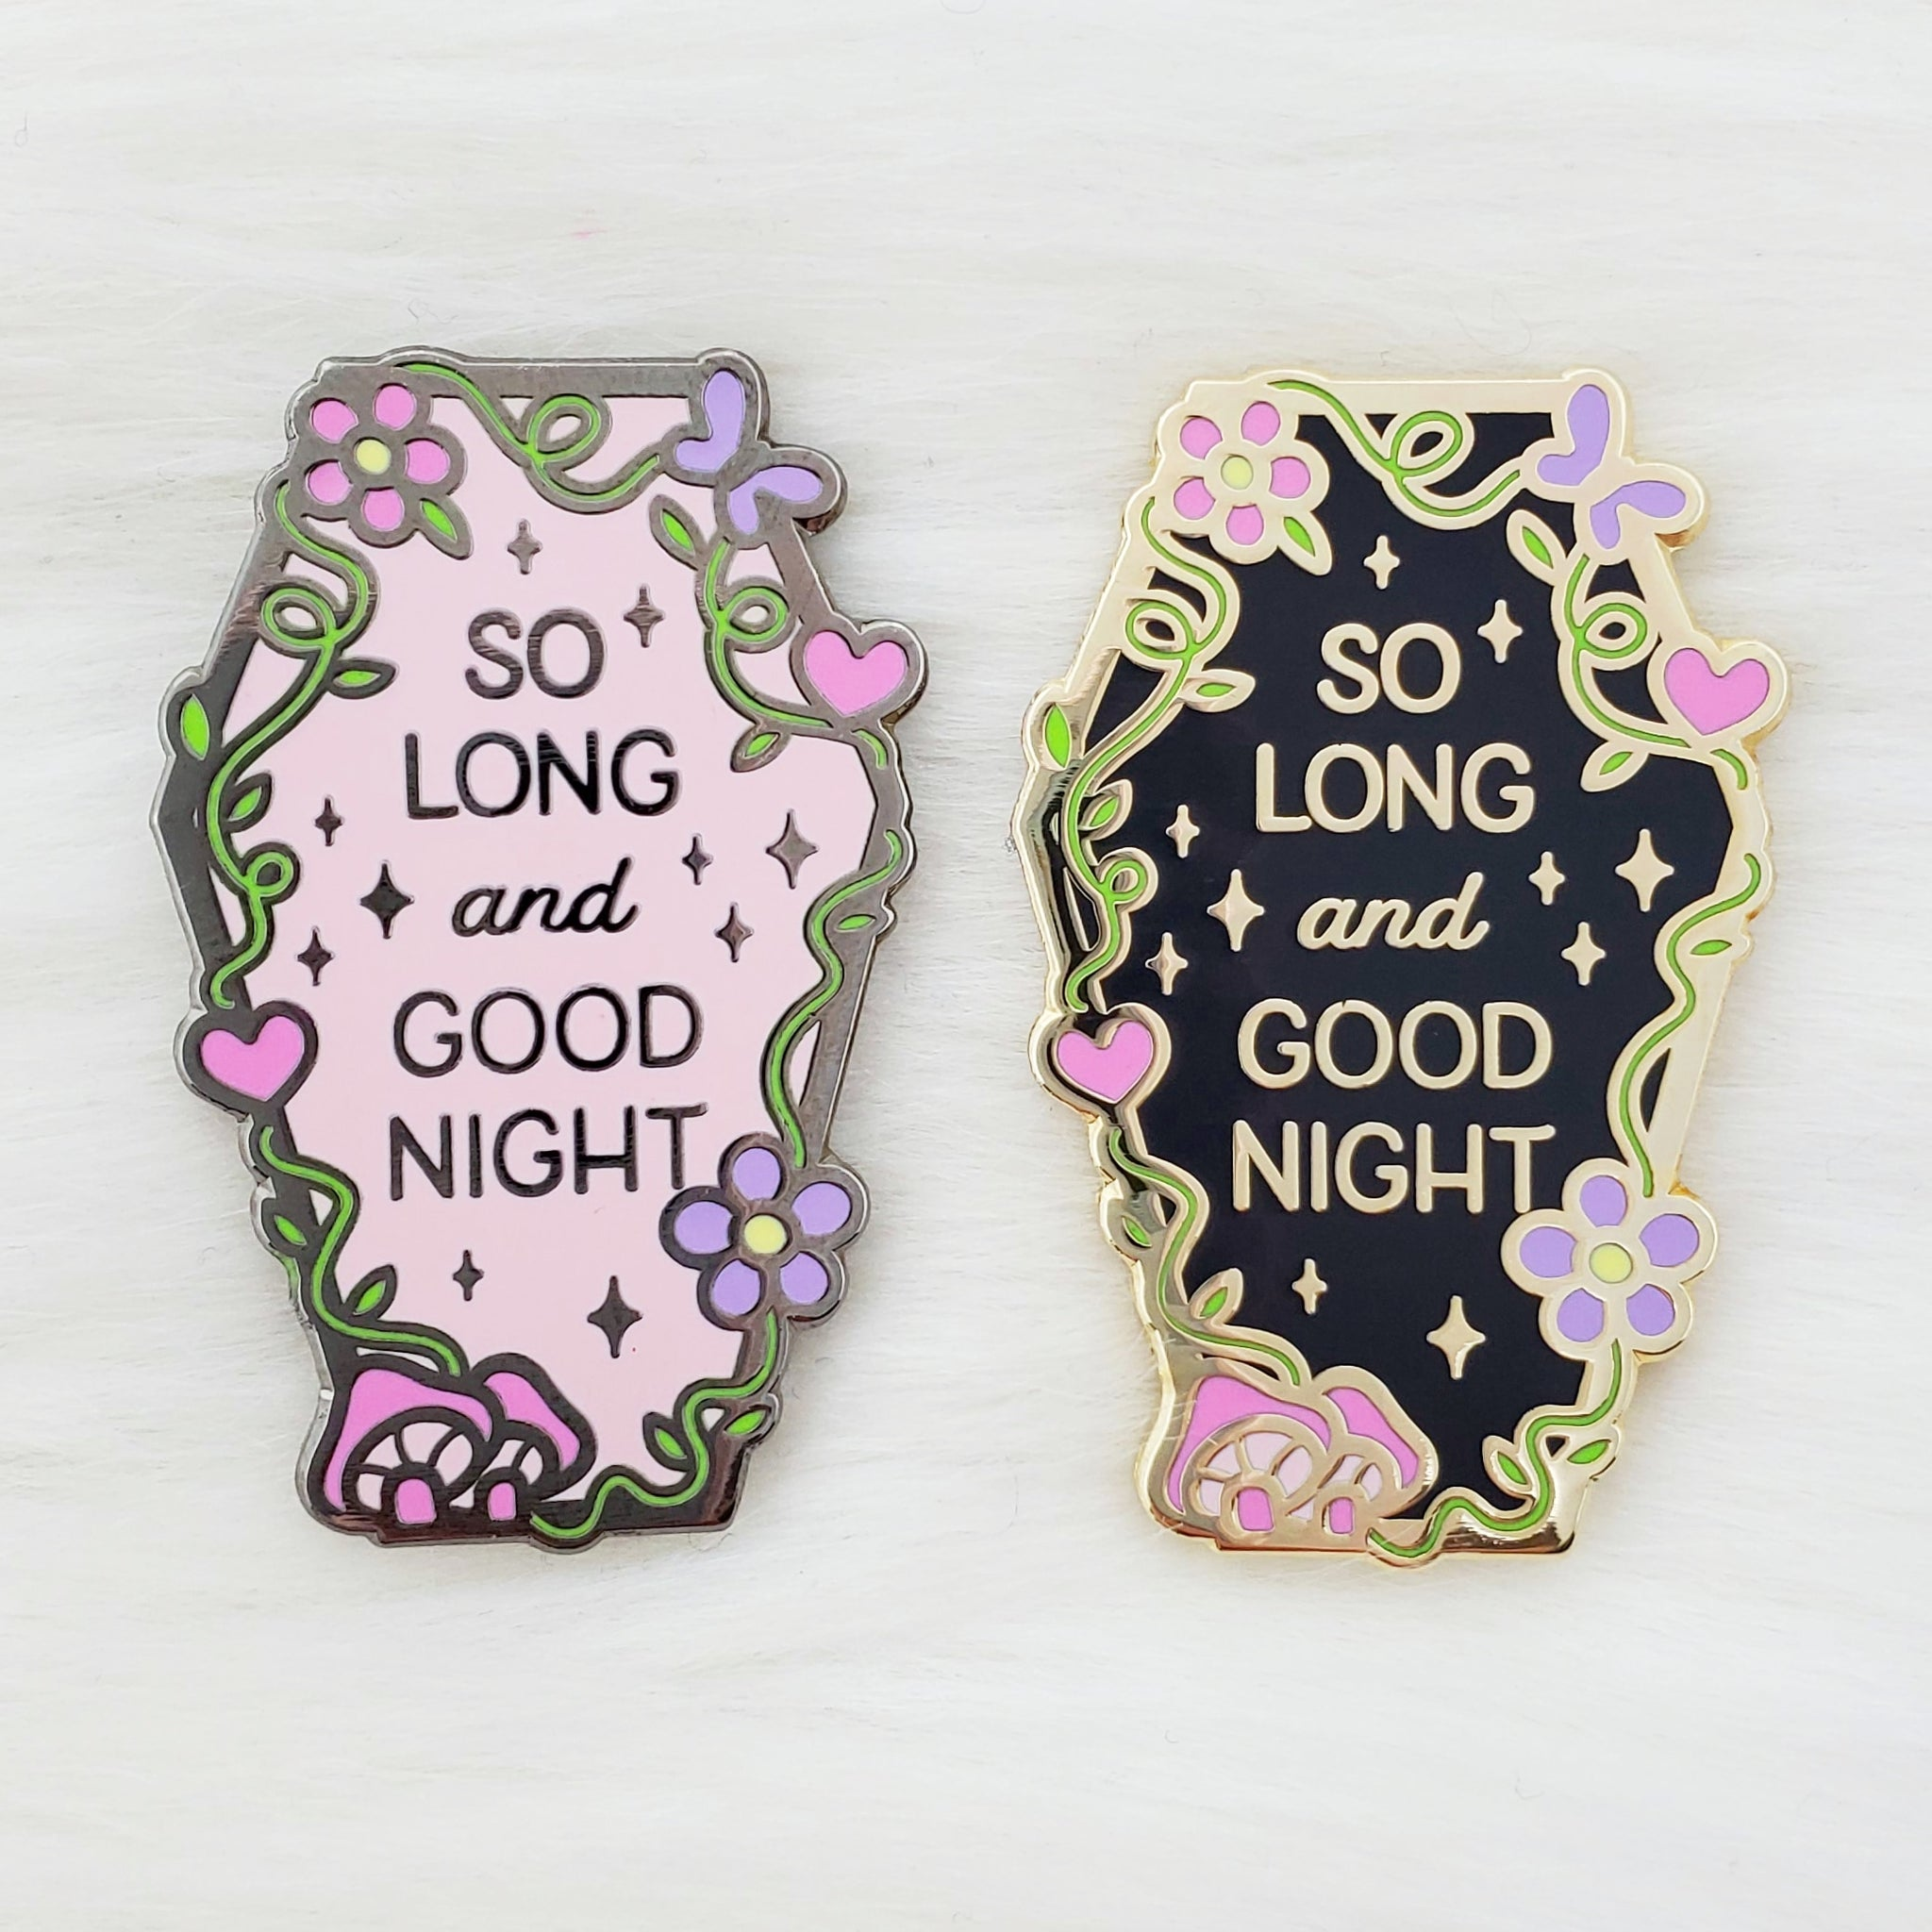 ♡ Good Night Enamel Pin ♡